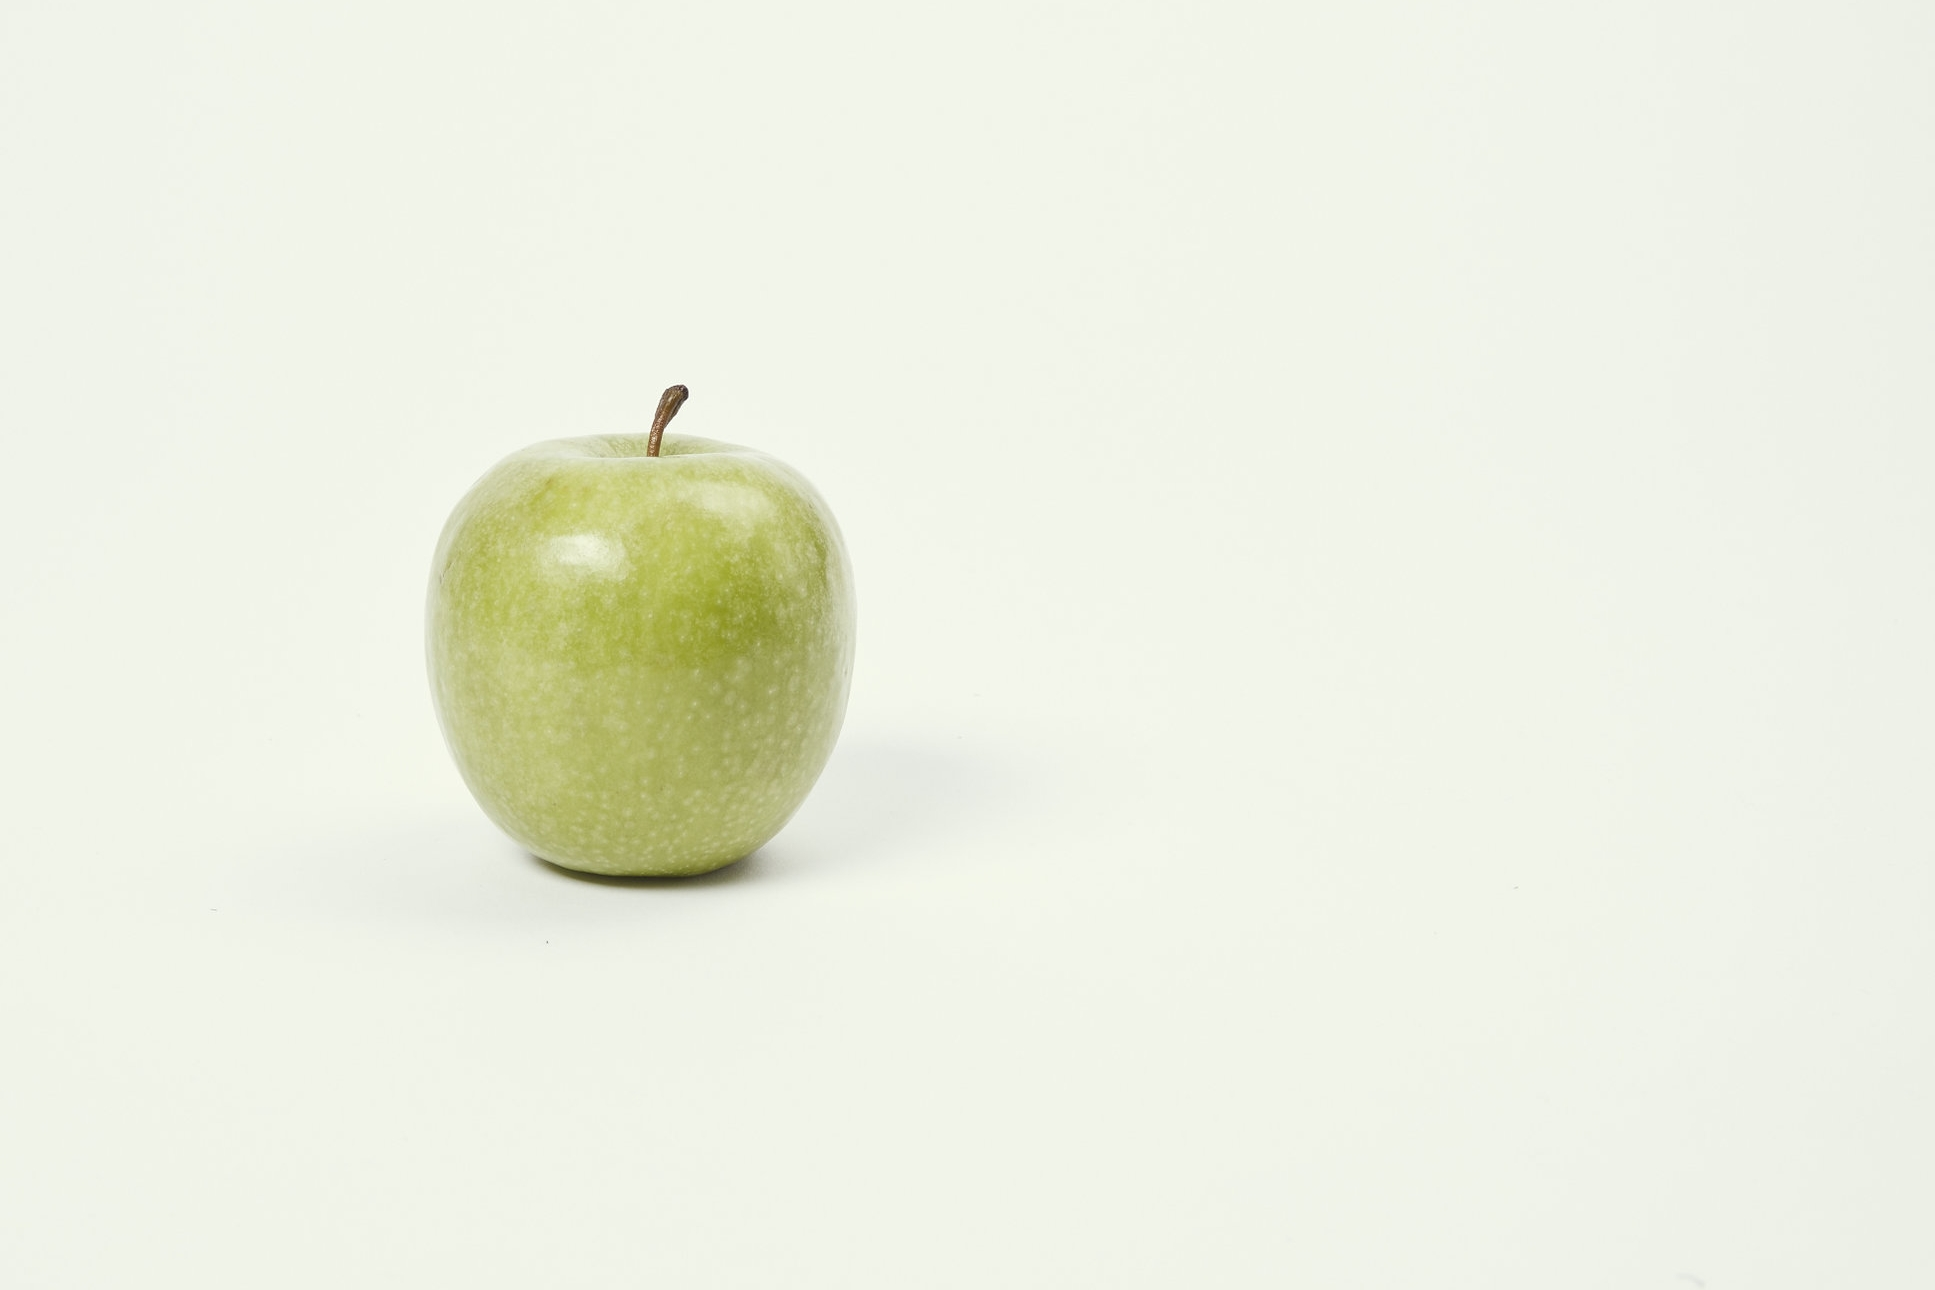 An apple depicts how Dialogic can help you look at things in a different way